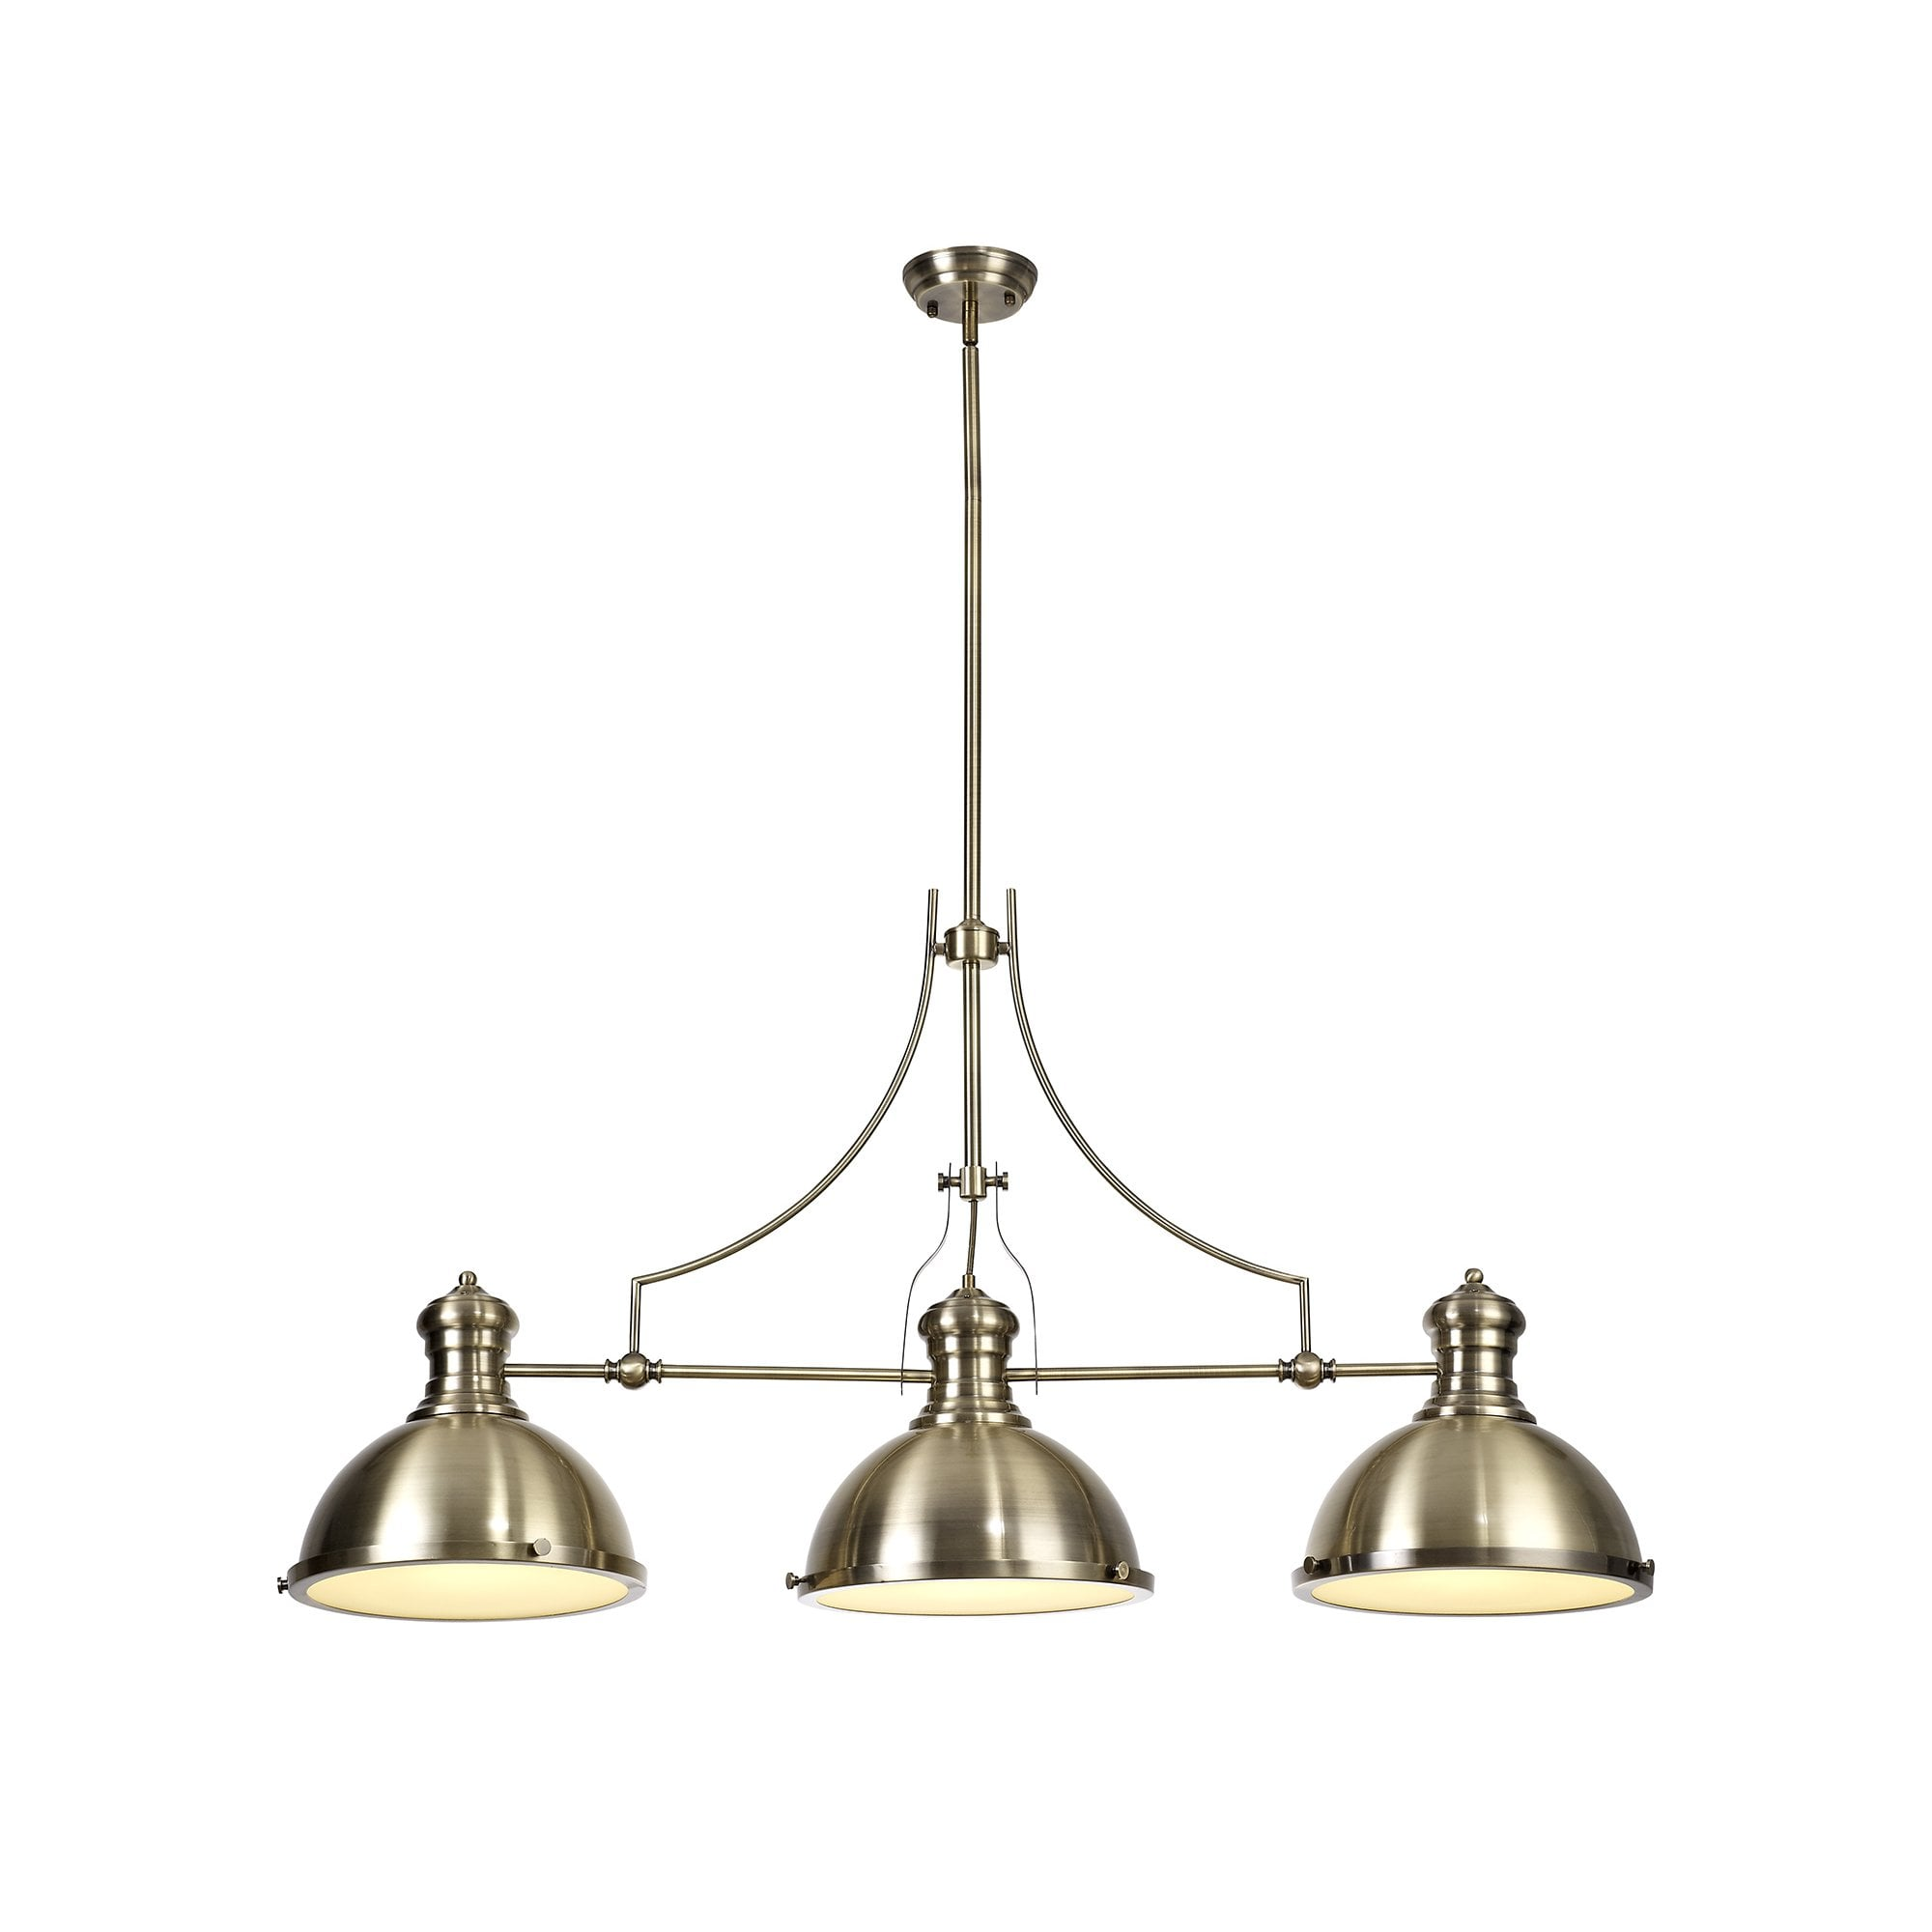 Antique Brass Ceiling Bar Pendant With 3 Lights For Over Kitchen Islands